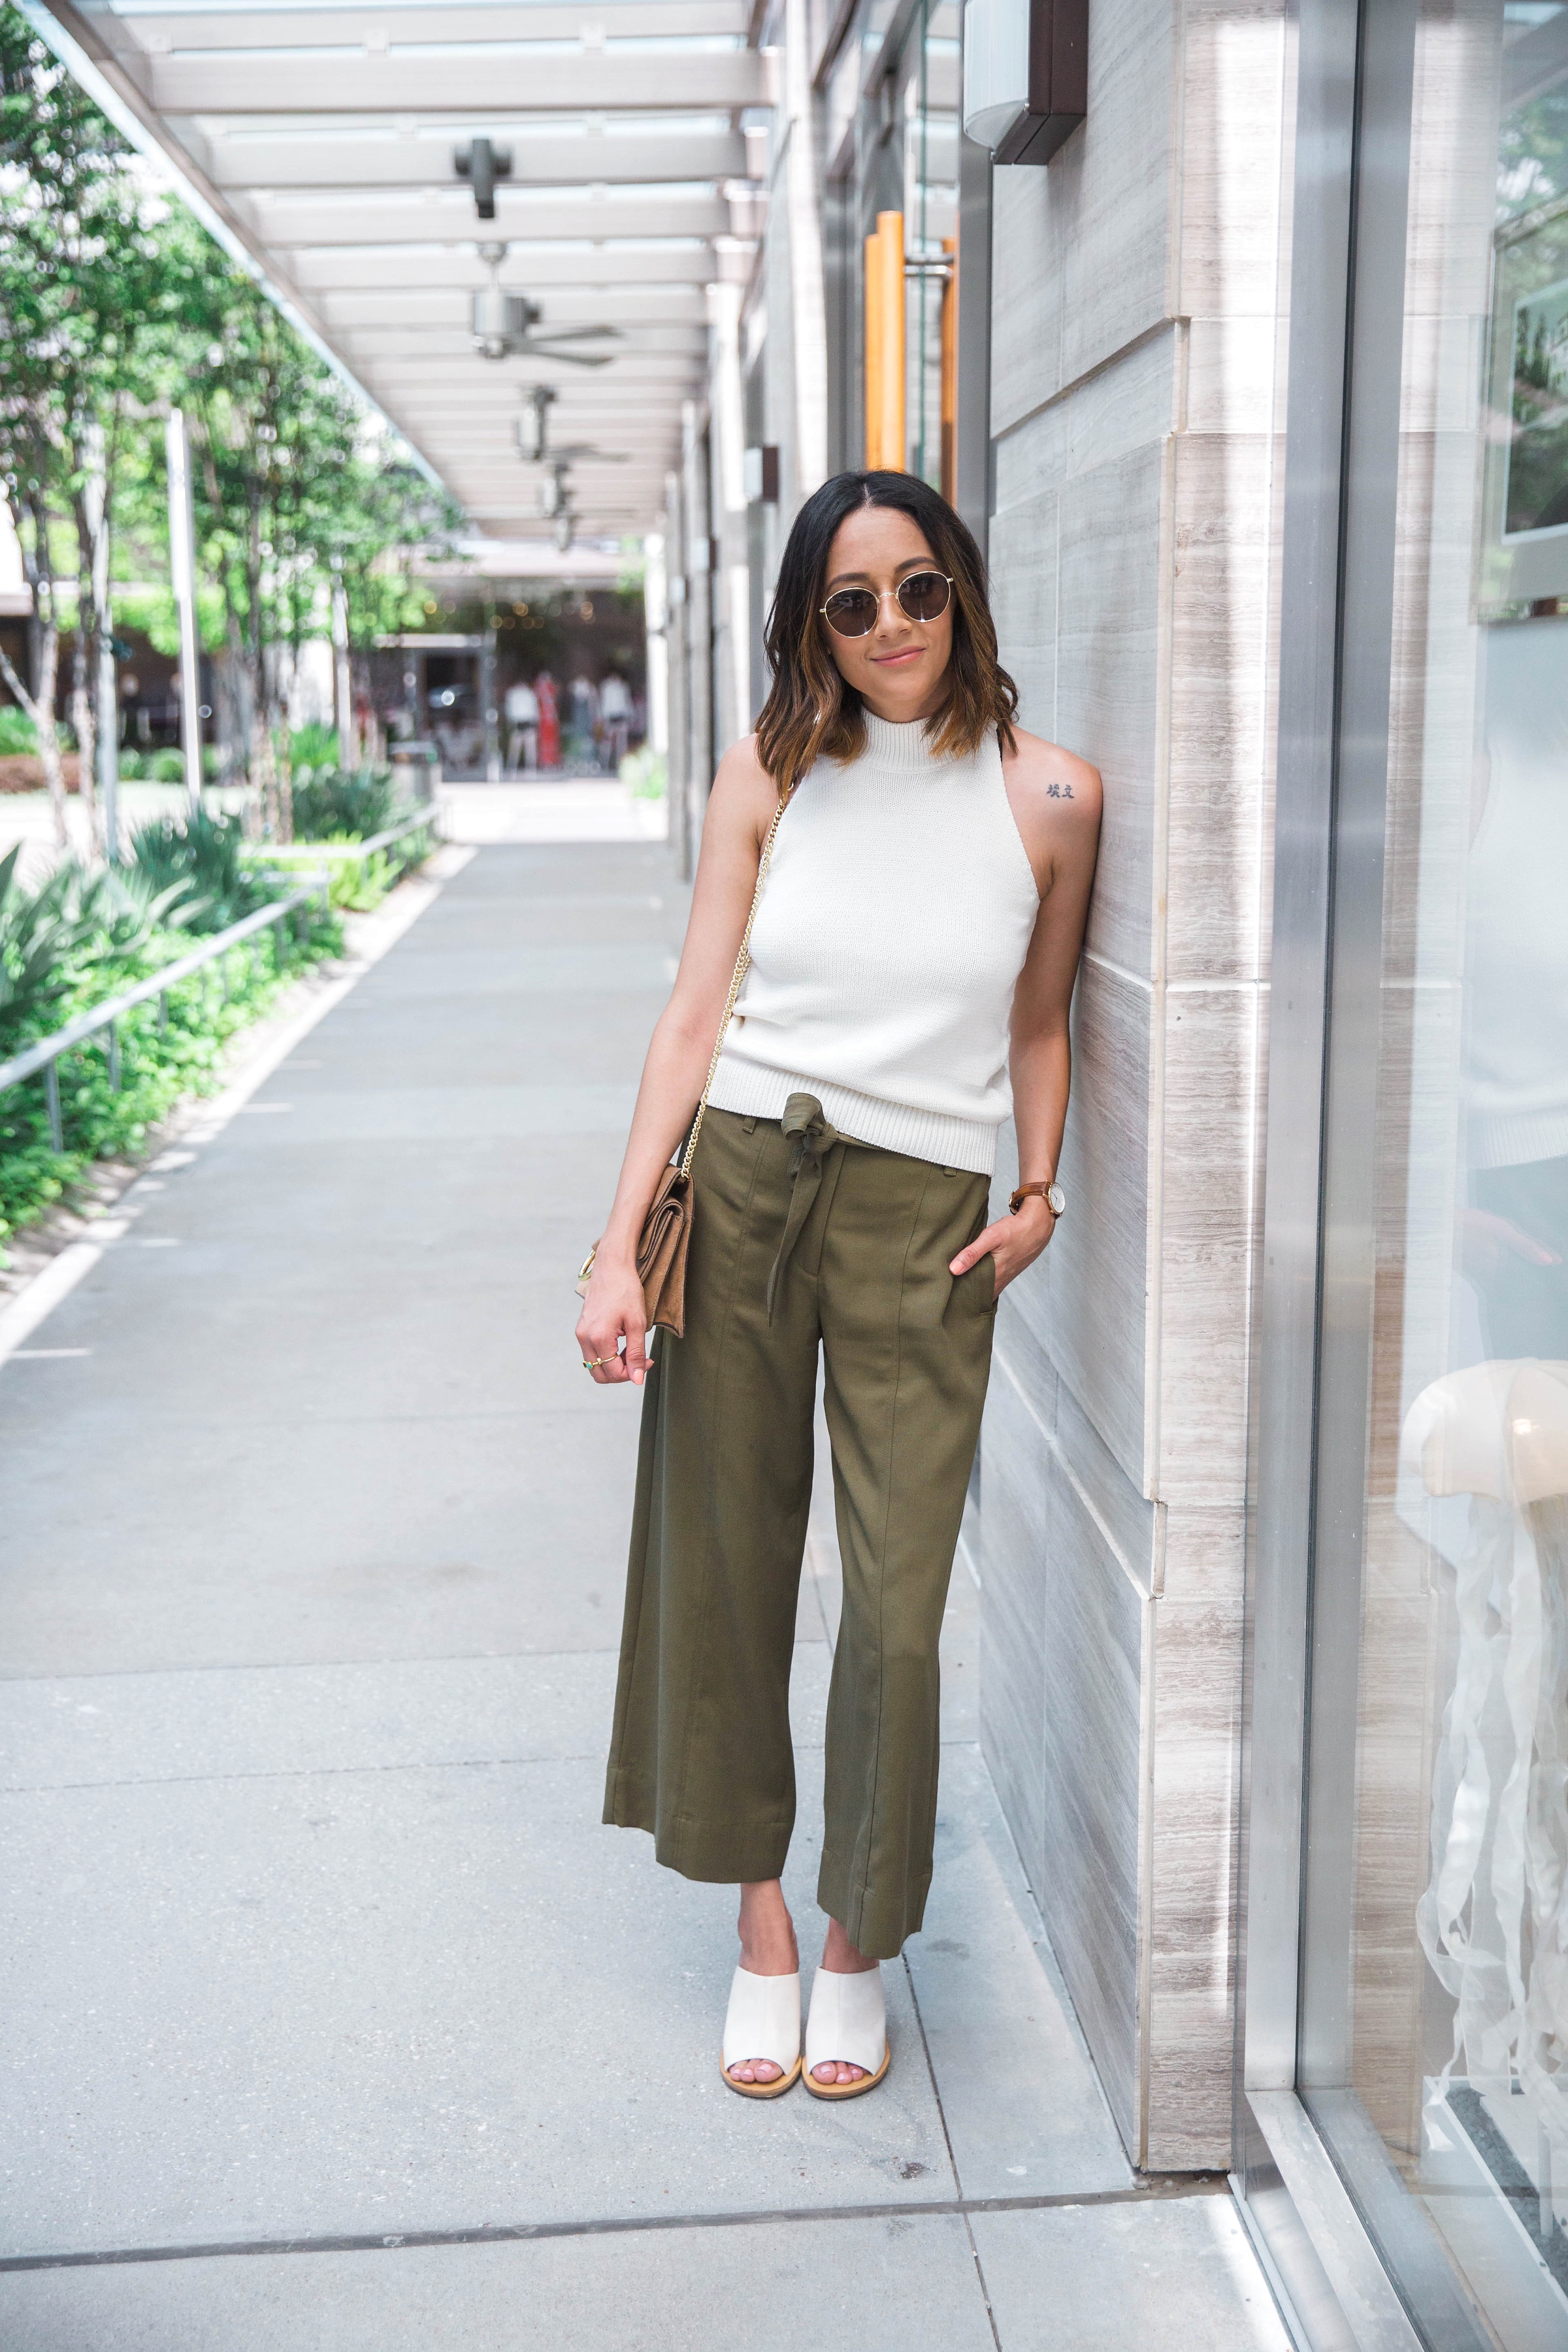 Transitional Separates | Culottes | Sweater Top | Wedge Sandals